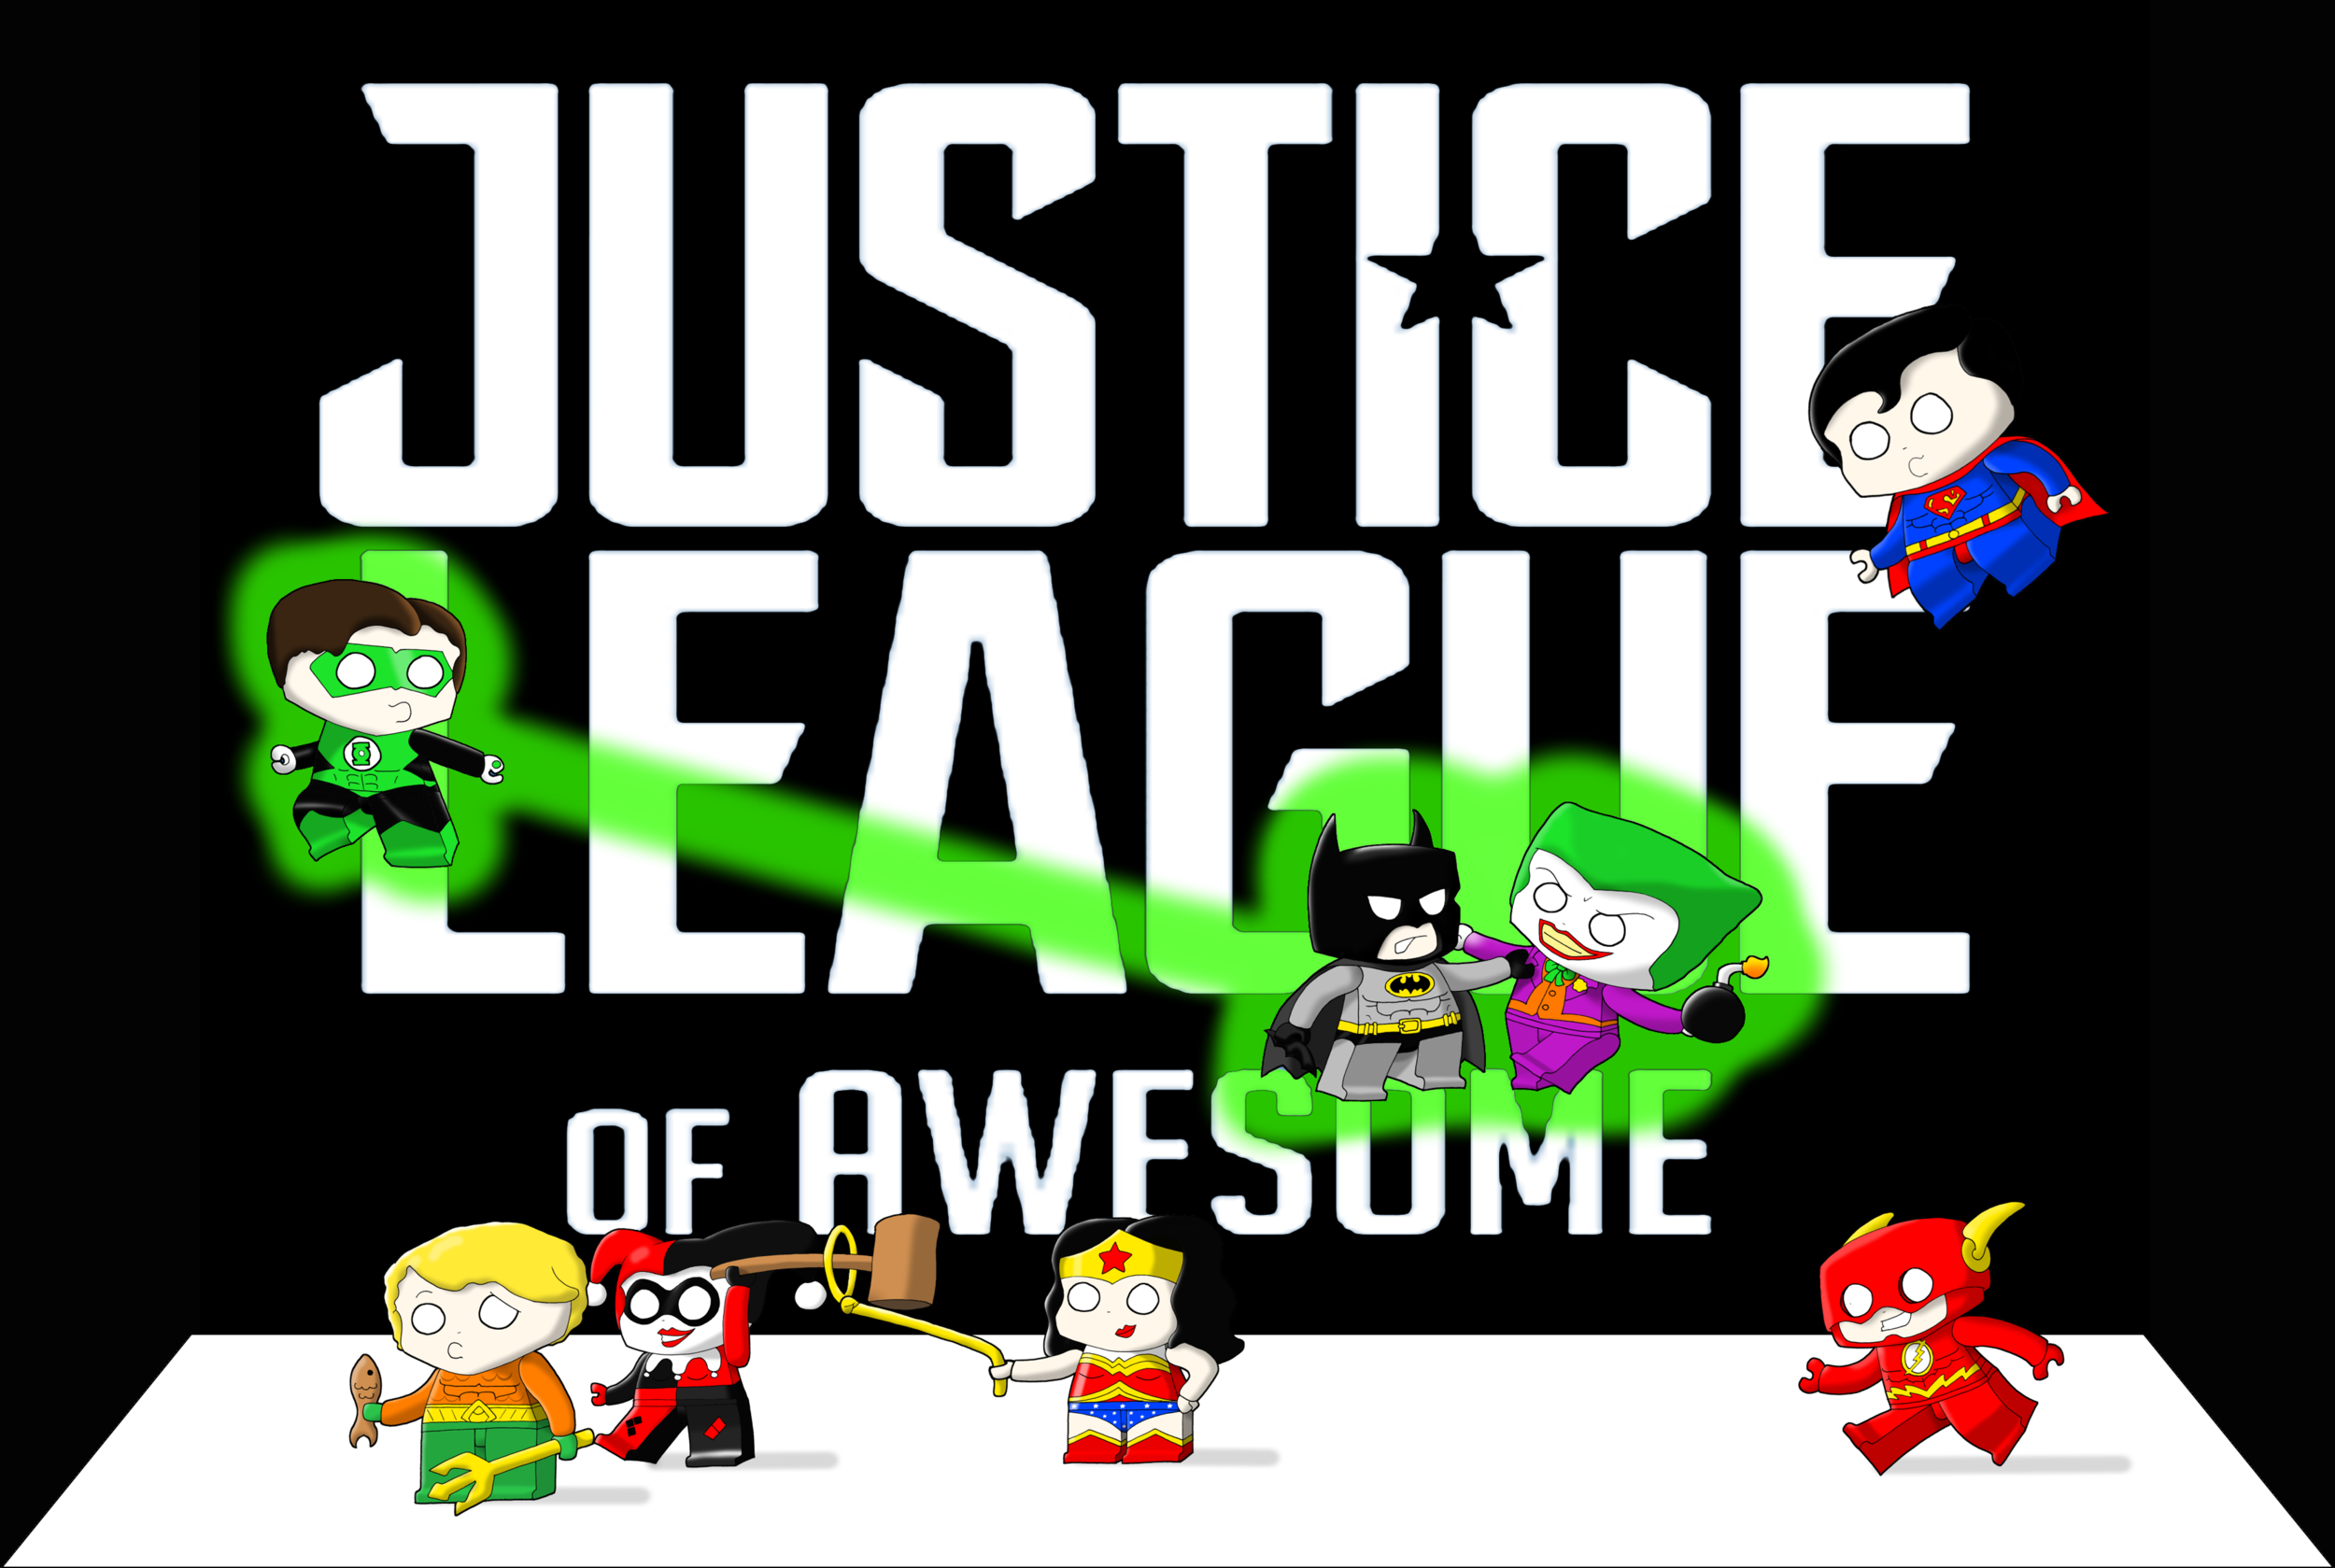 JLA with logo3.6.png